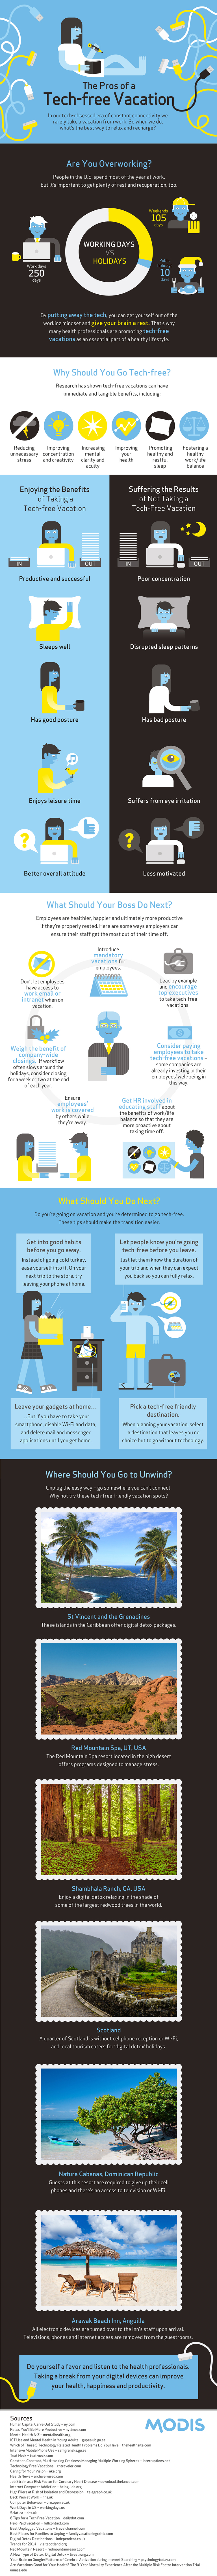 The Pros of a Tech-Free Vacation (Infographic)